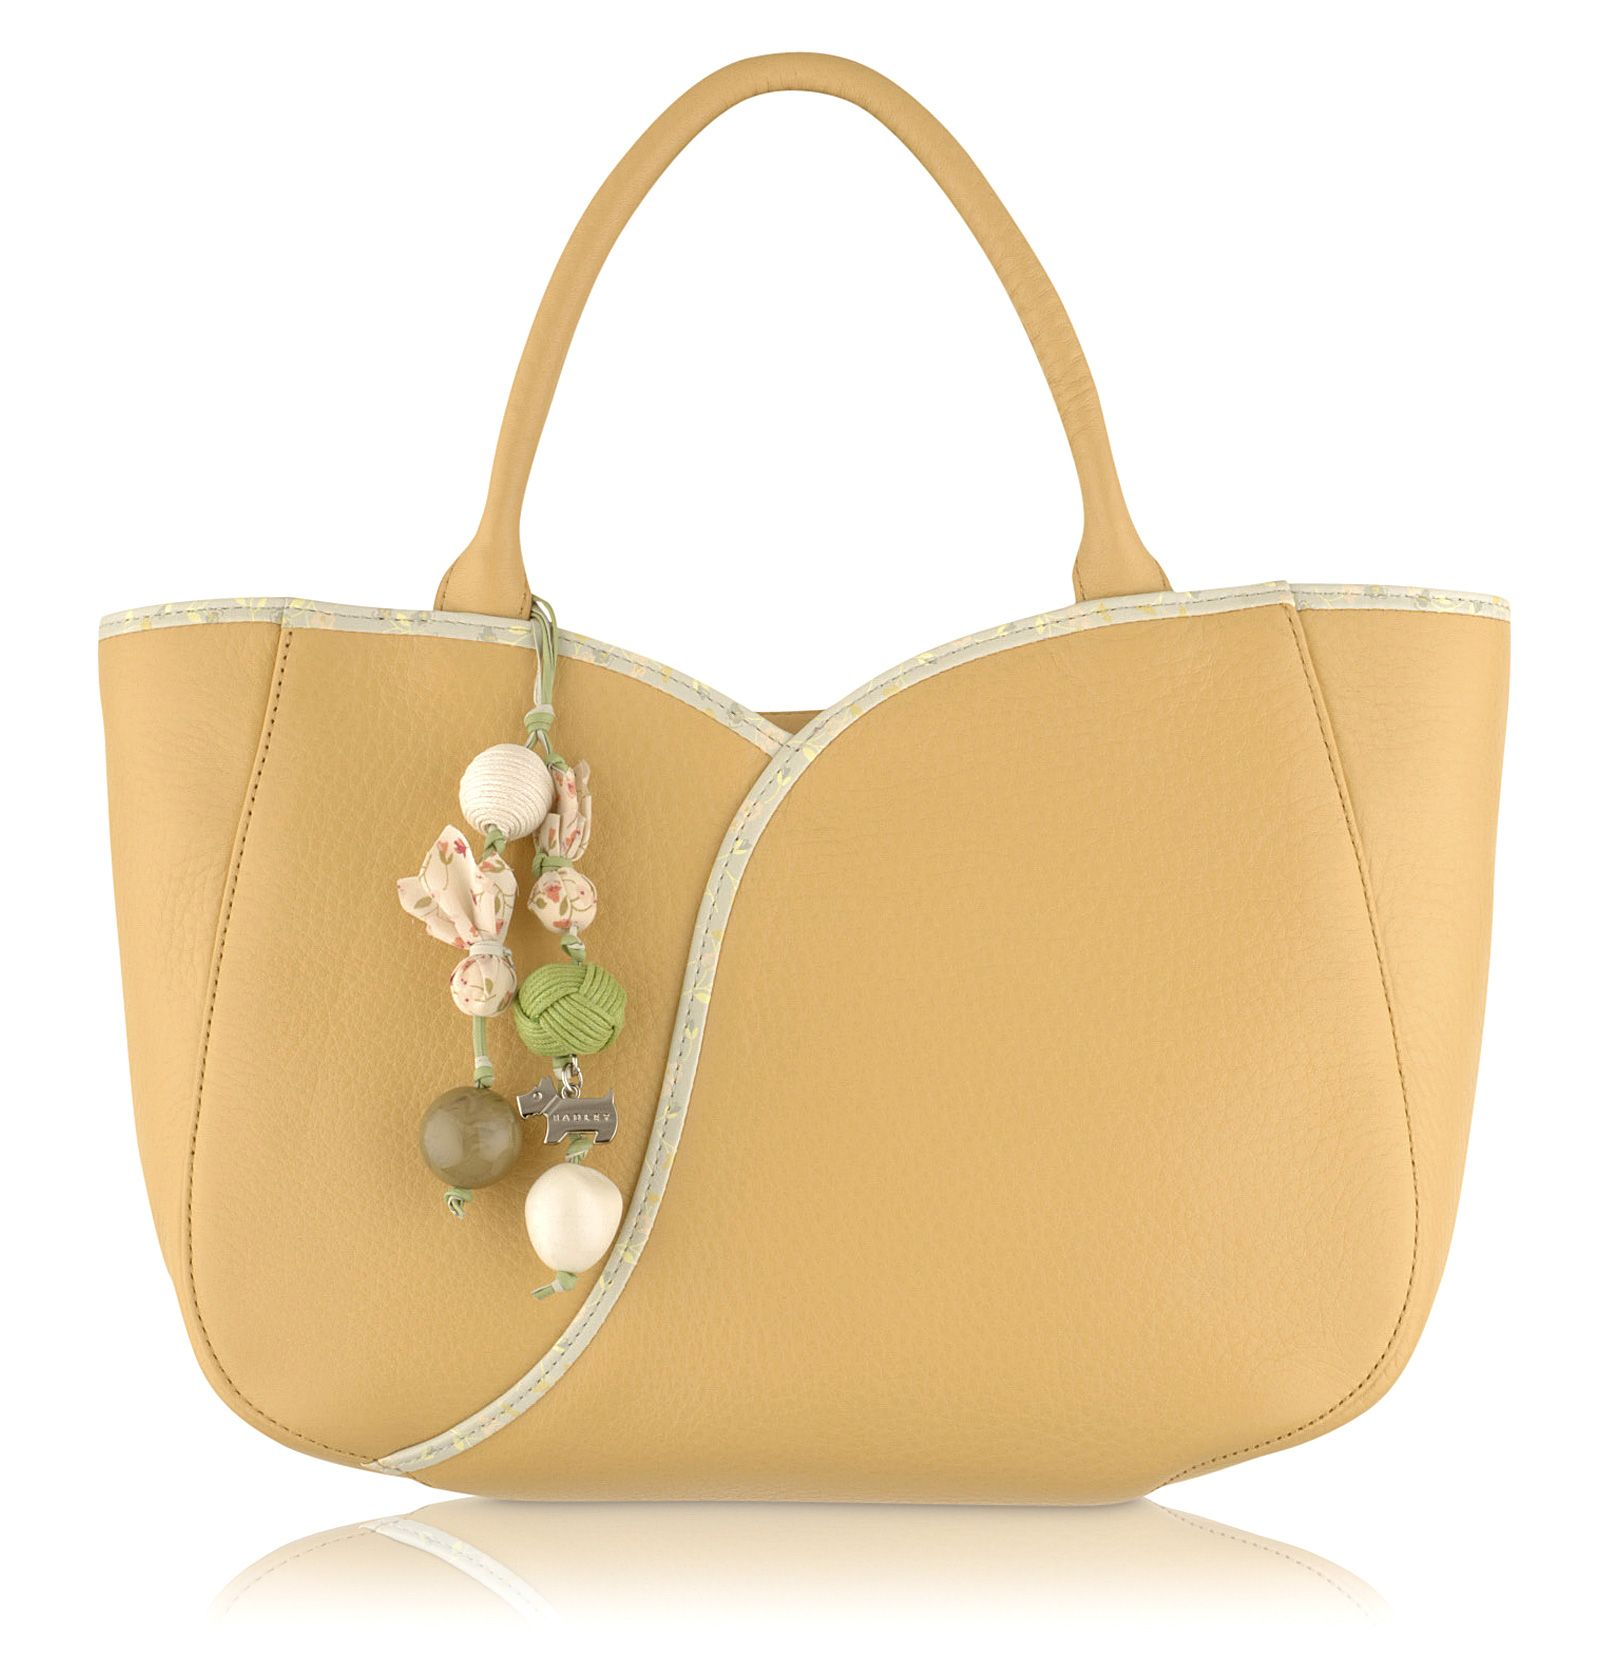 Potton Medium tote